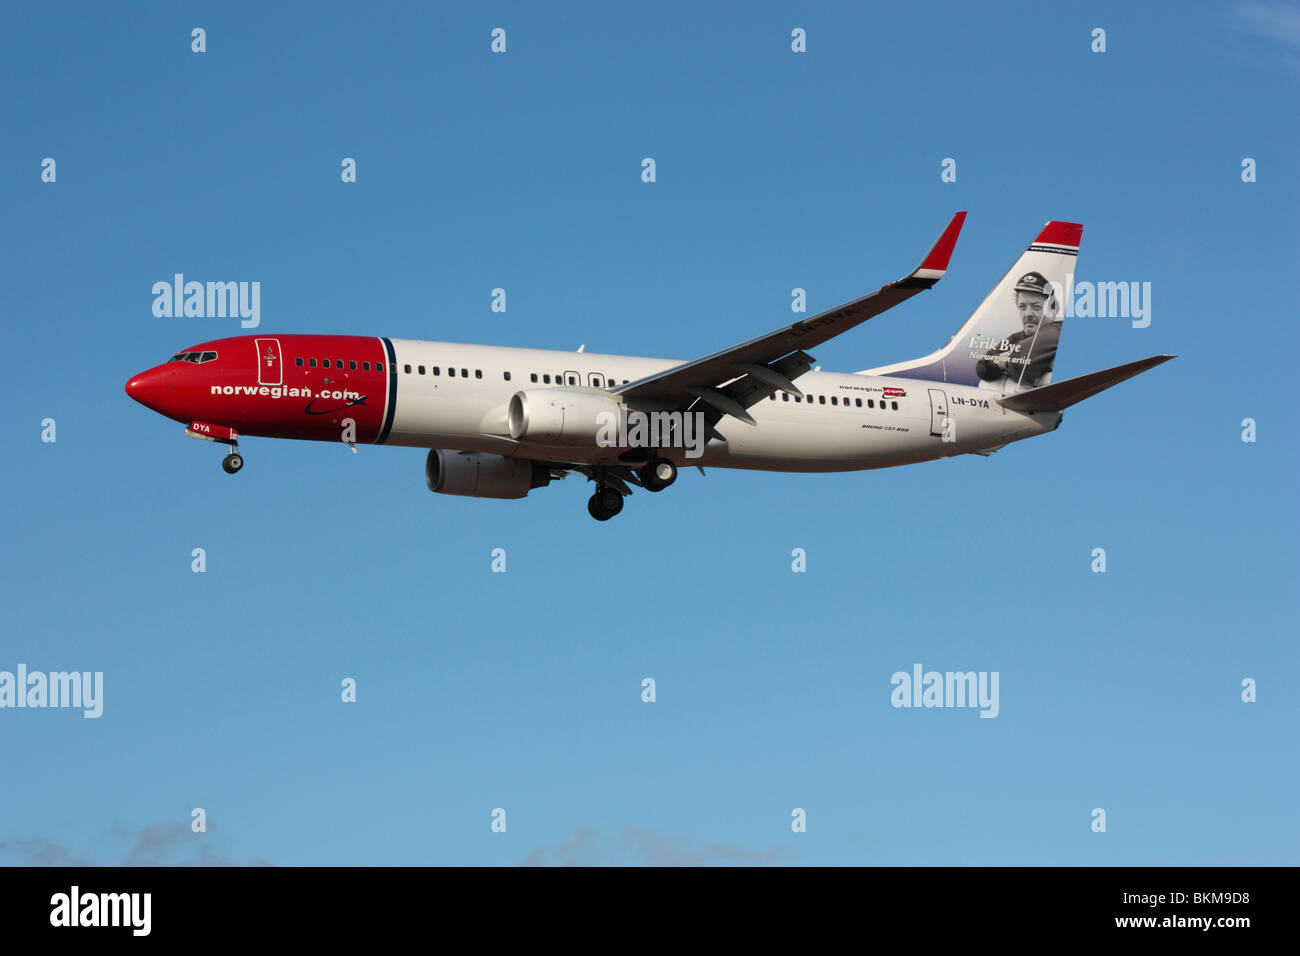 Boeing 737-800 operated by Norwegian - Stock Image